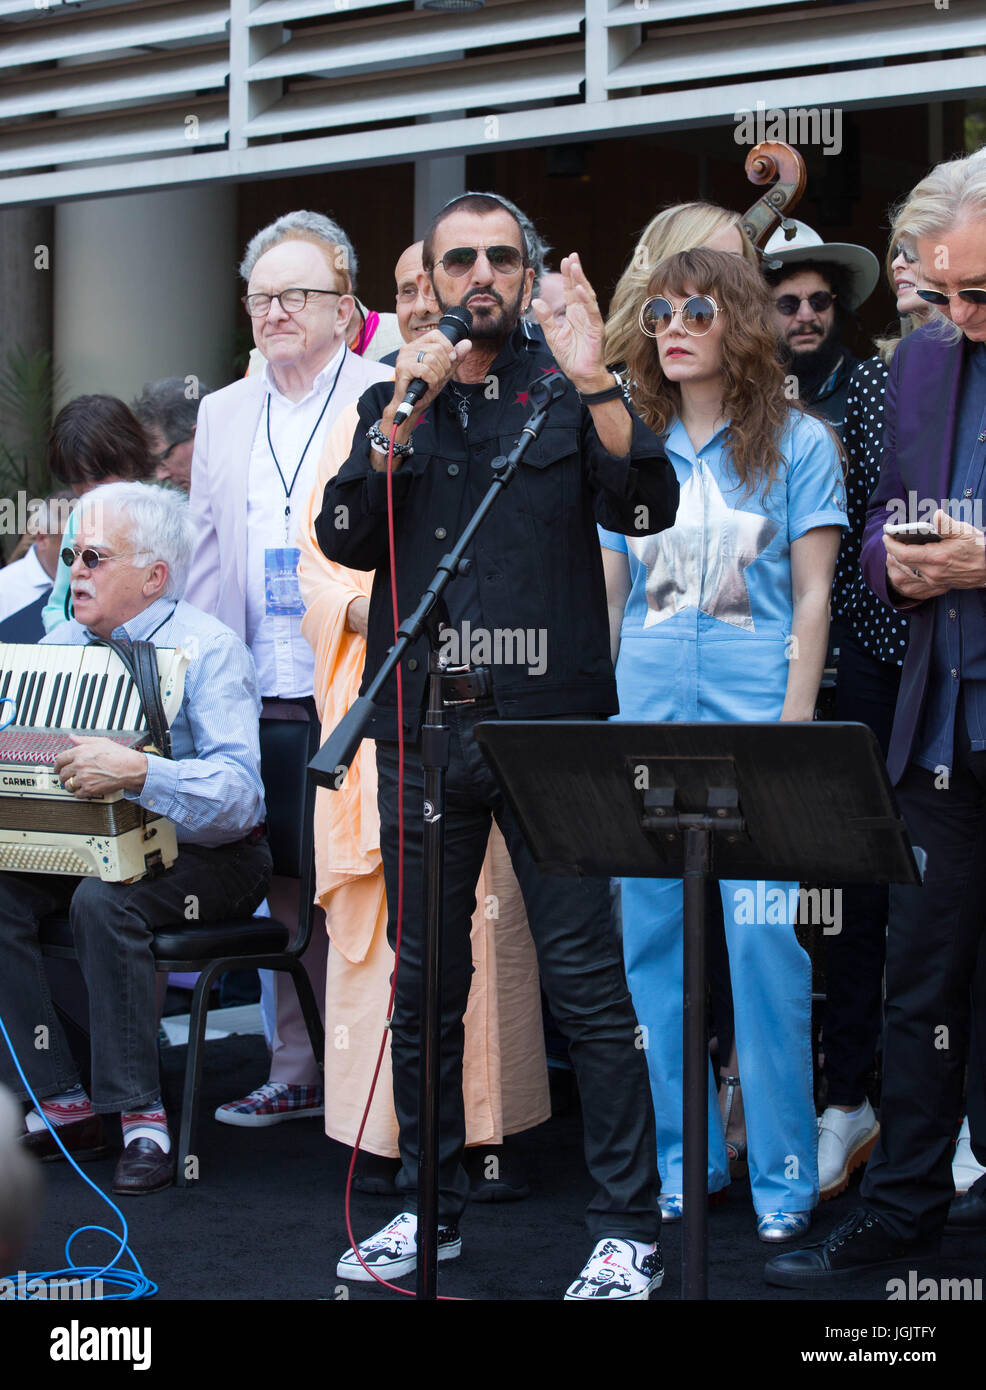 Hollywood,California,USA. 06th July,2017. Musician Ringo Starr appears his 'Peace & Love' 77th birthday - Stock Image